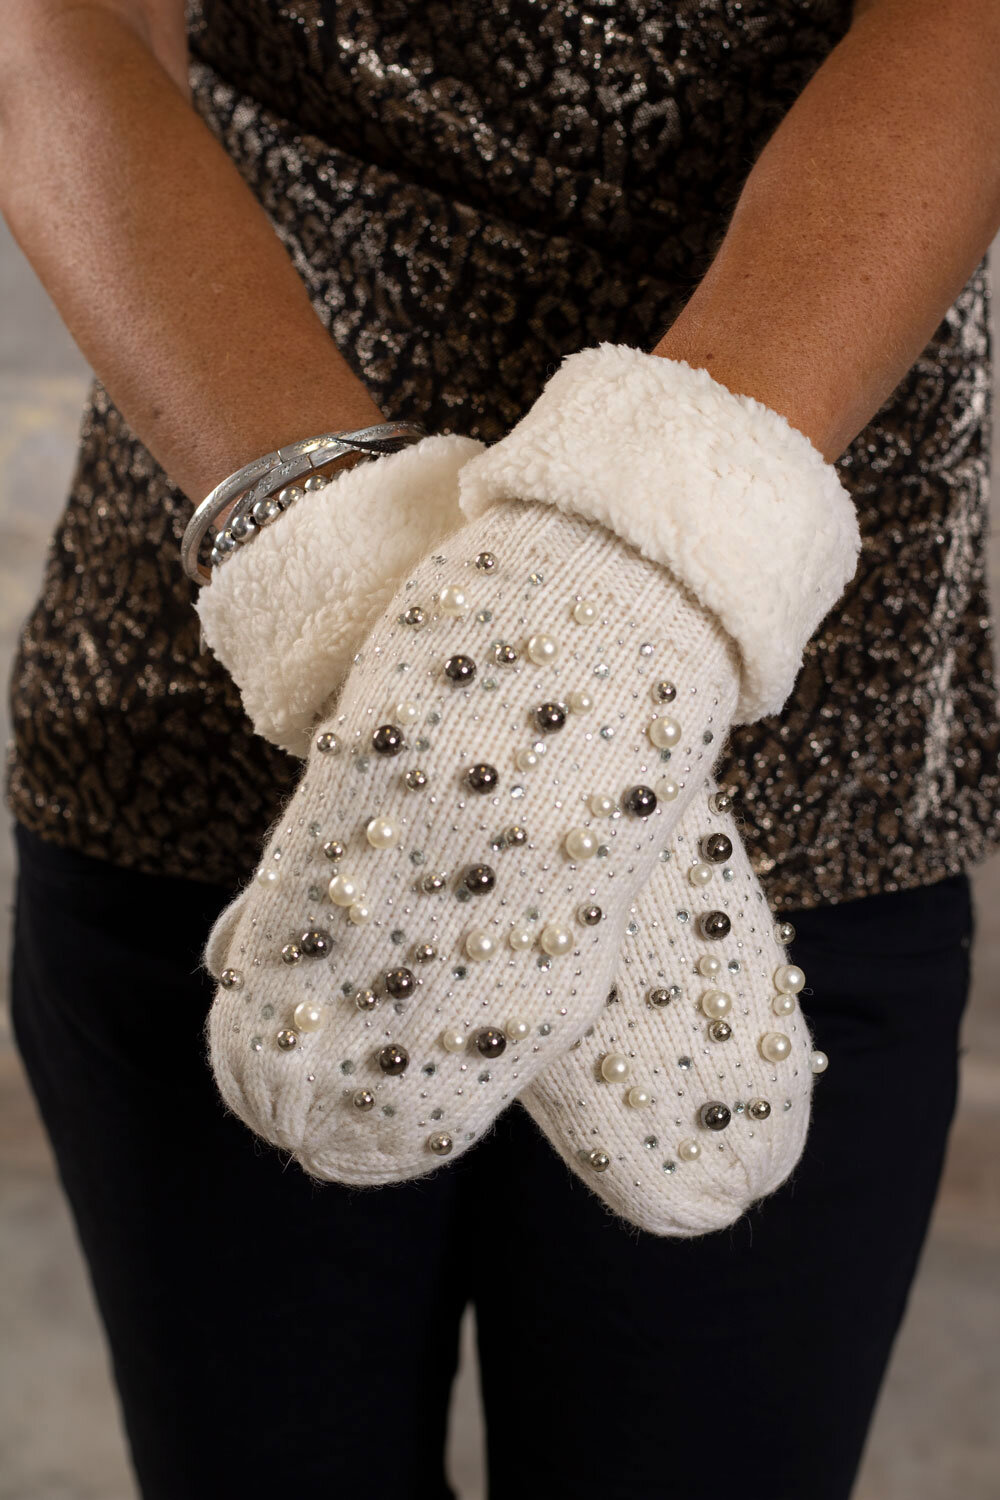 Mittens - Pearls and Bling - Cream